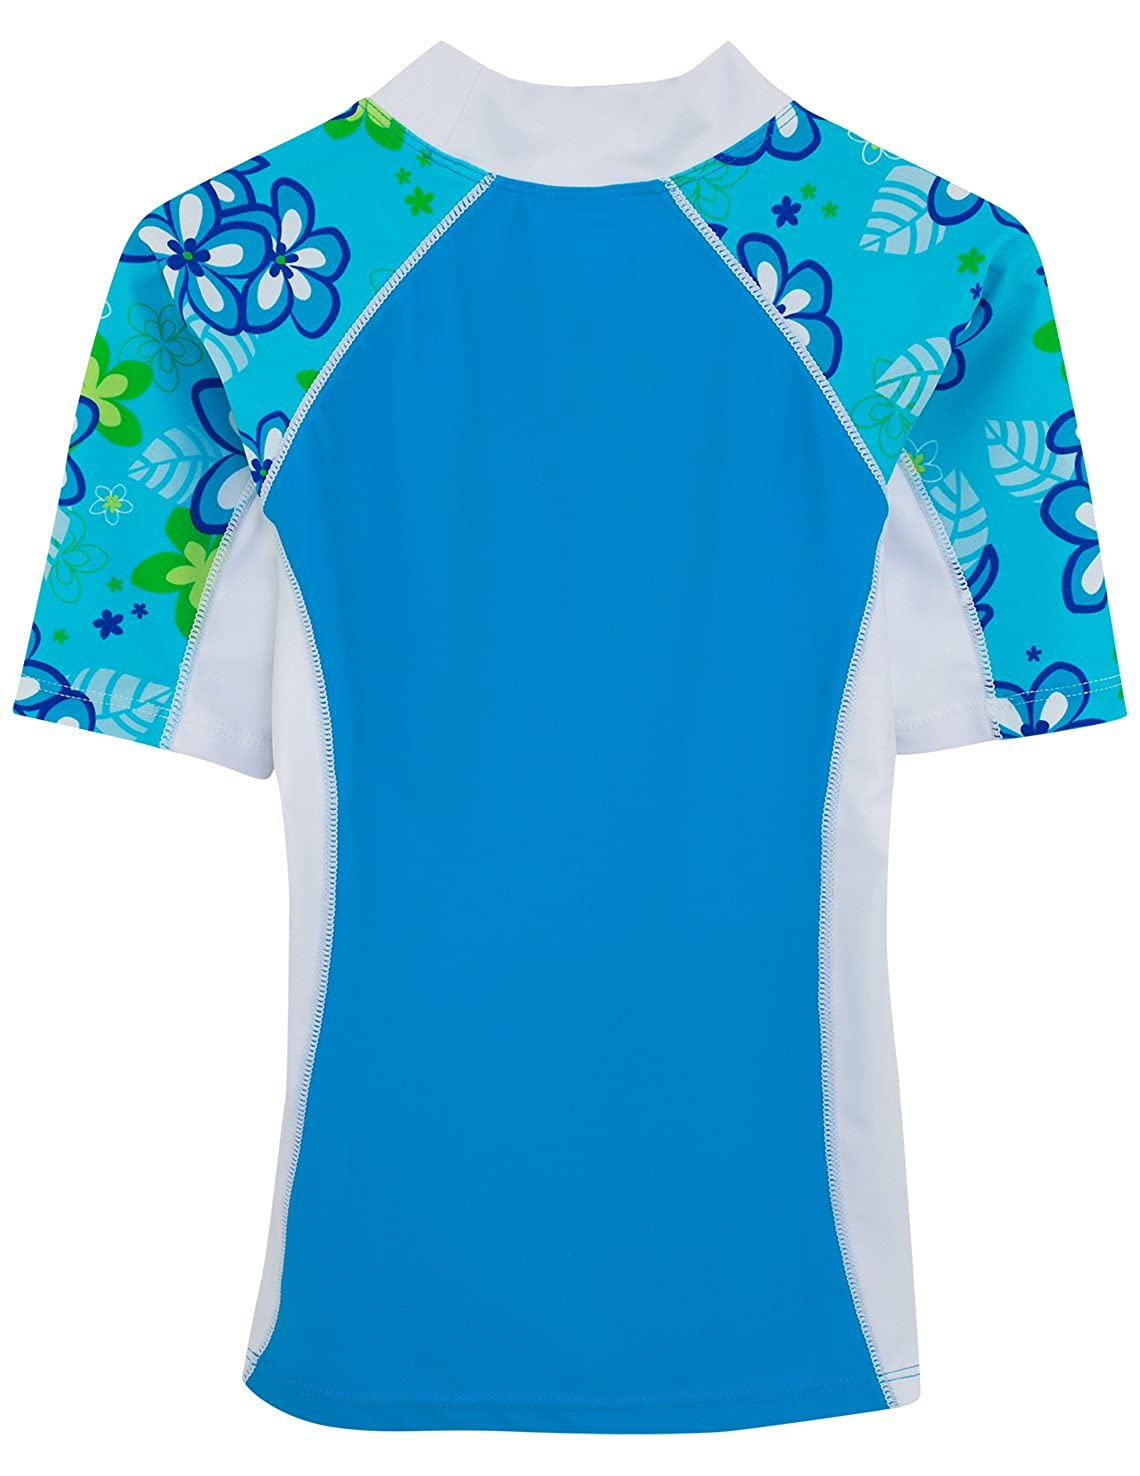 Sun Protection Swim Shirt UPF 50 Tuga Girls Short Sleeve Rash Guard Children 1-14 Years